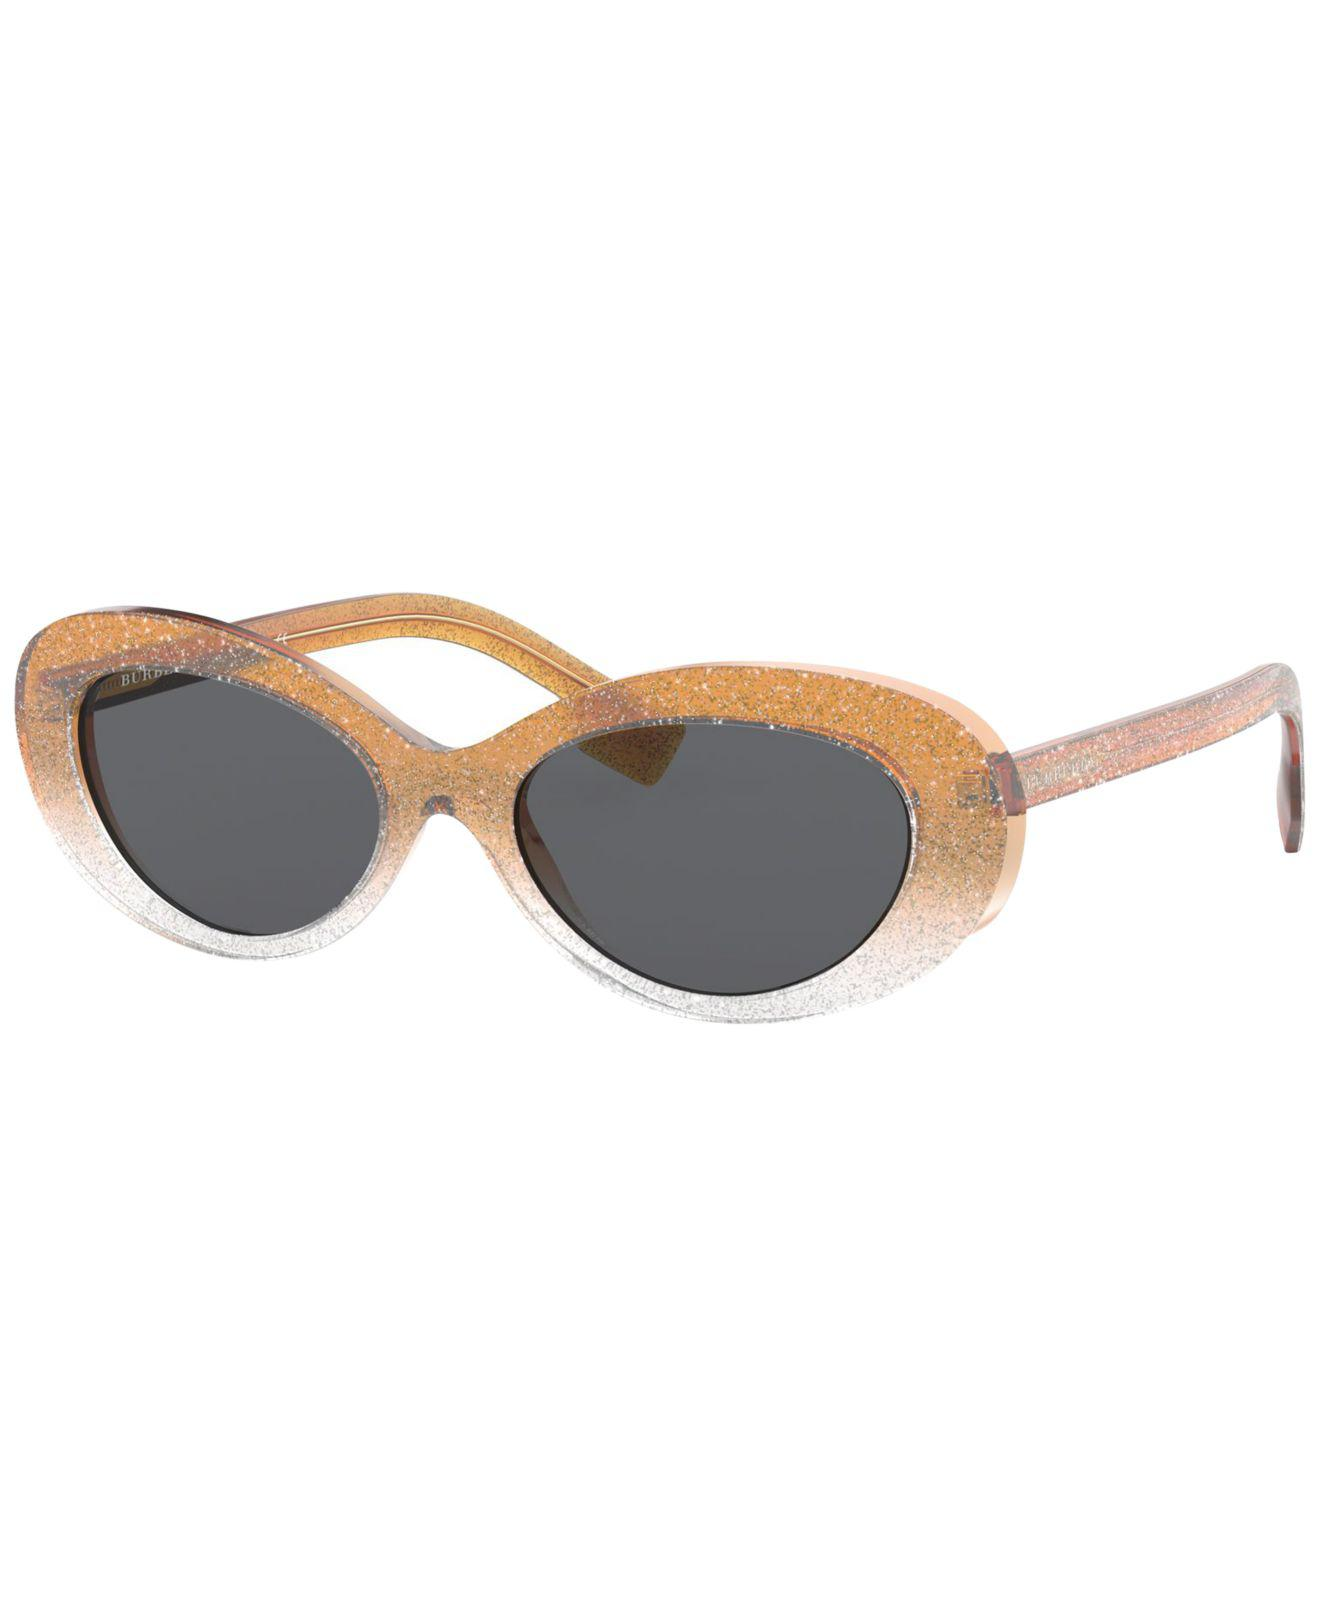 3dc09eb1c15 Burberry. Women s Sunglasses ...